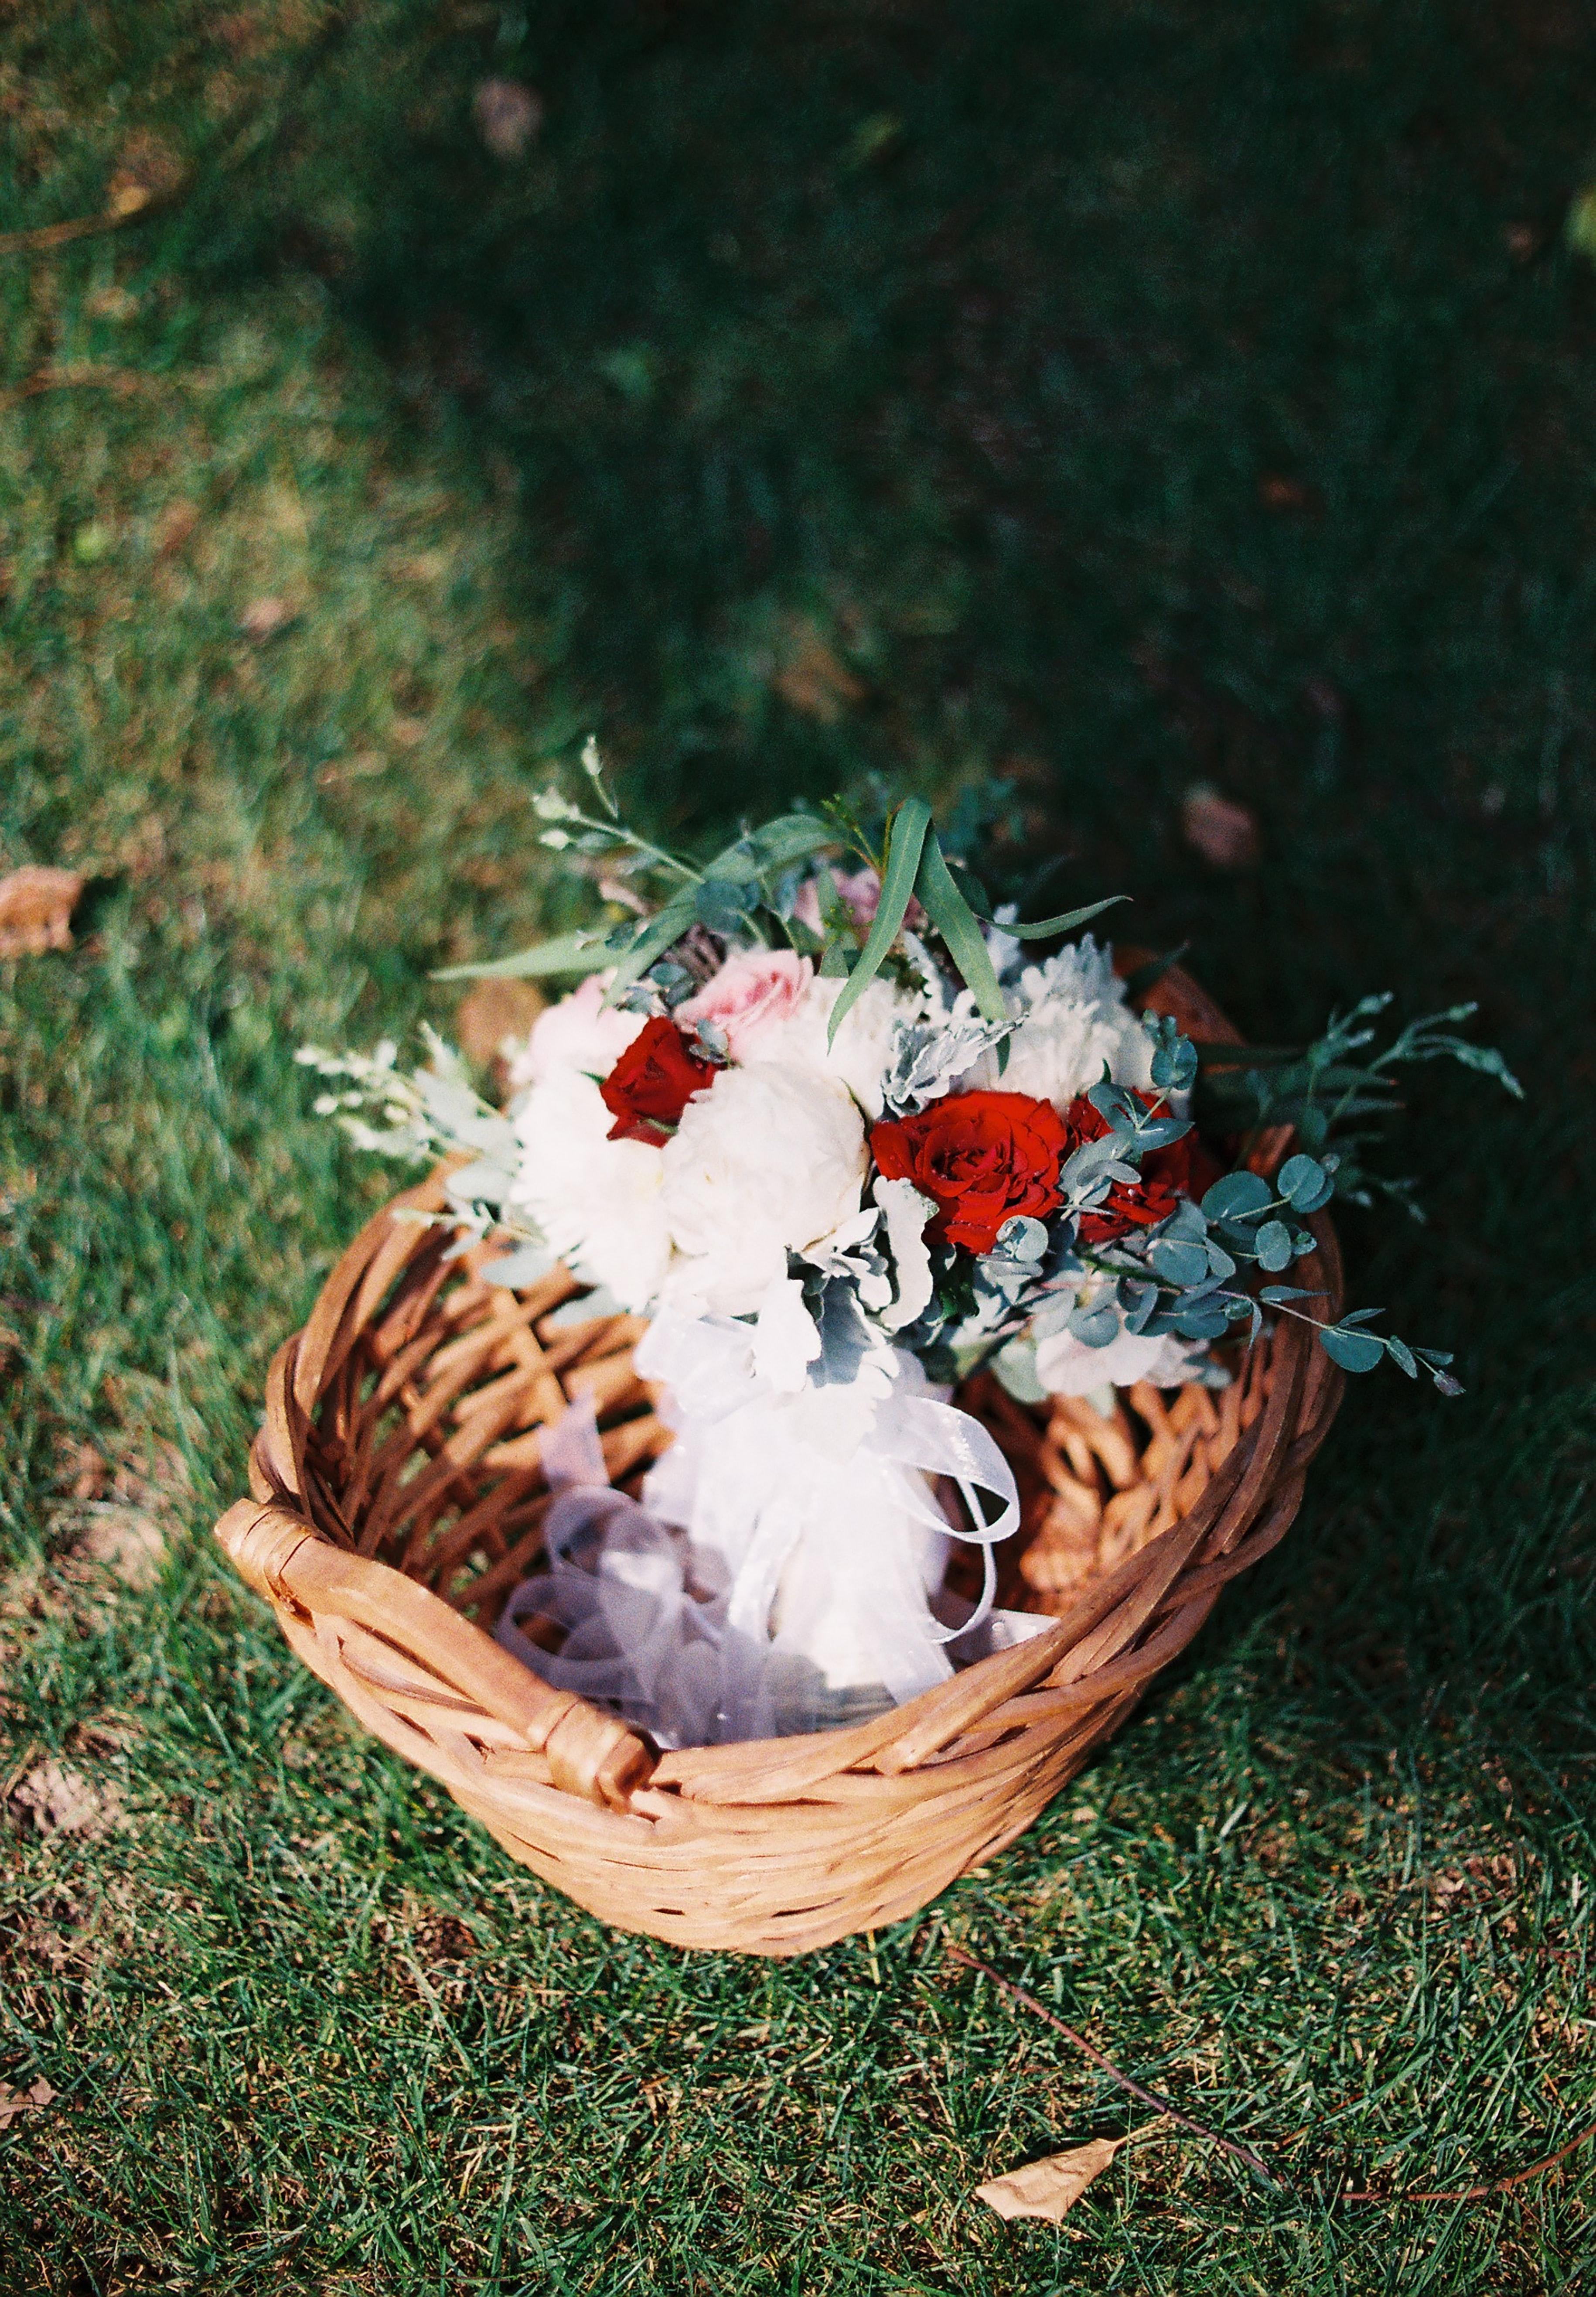 White And Red Flower Bouquet In Basket Photo Free Basket Image On Unsplash